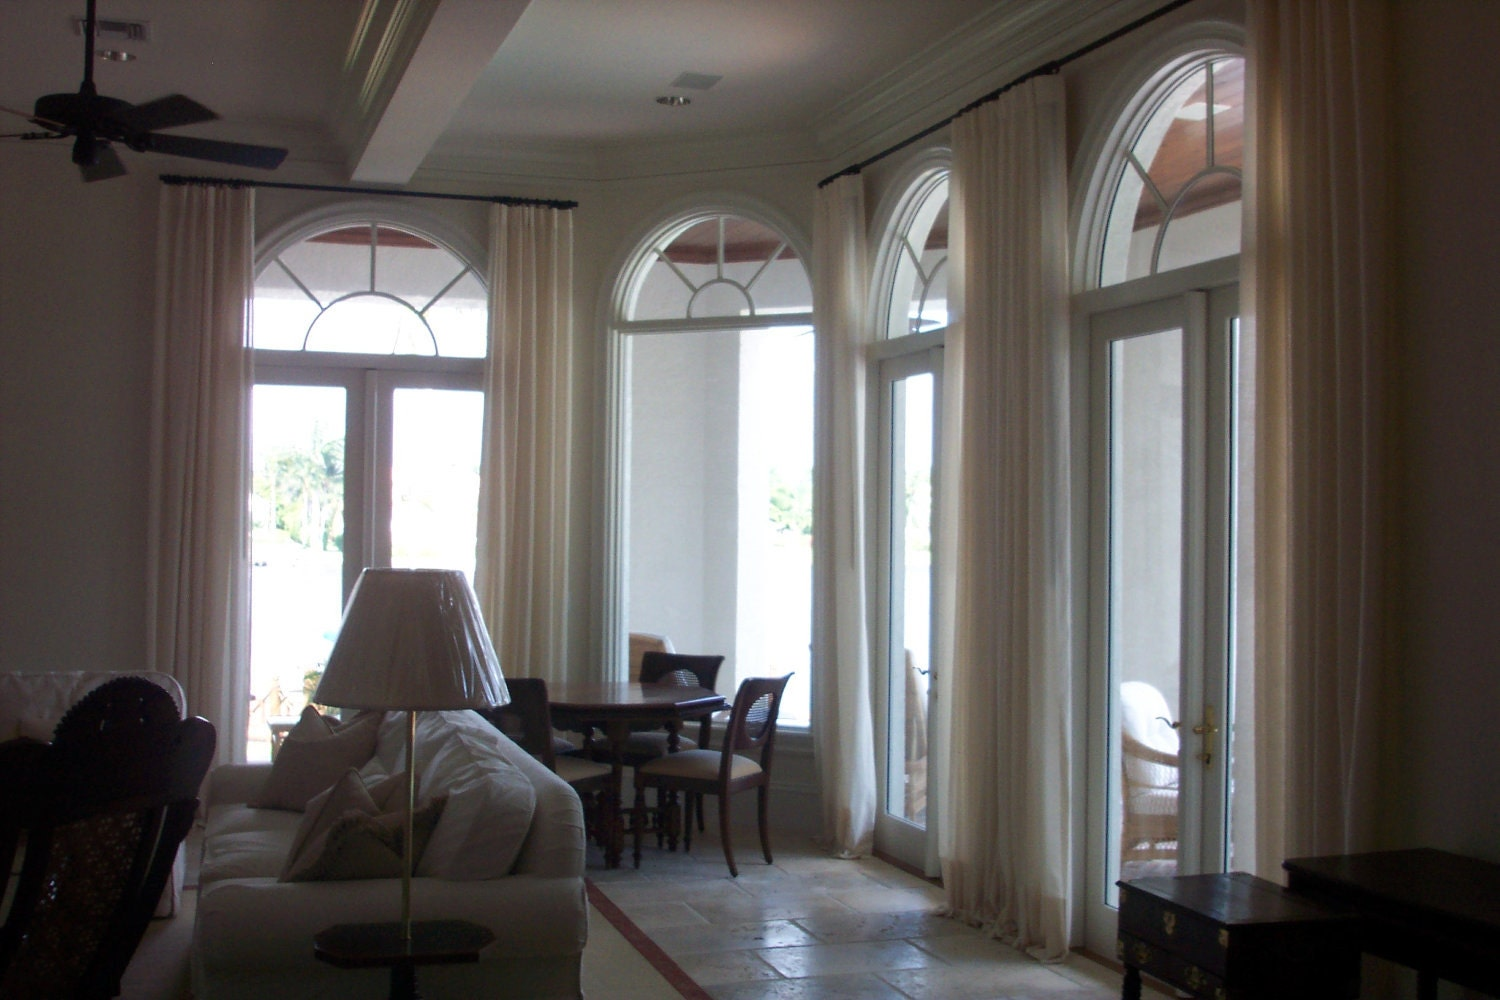 Request a custom order and have something made just for you High ceiling window treatments